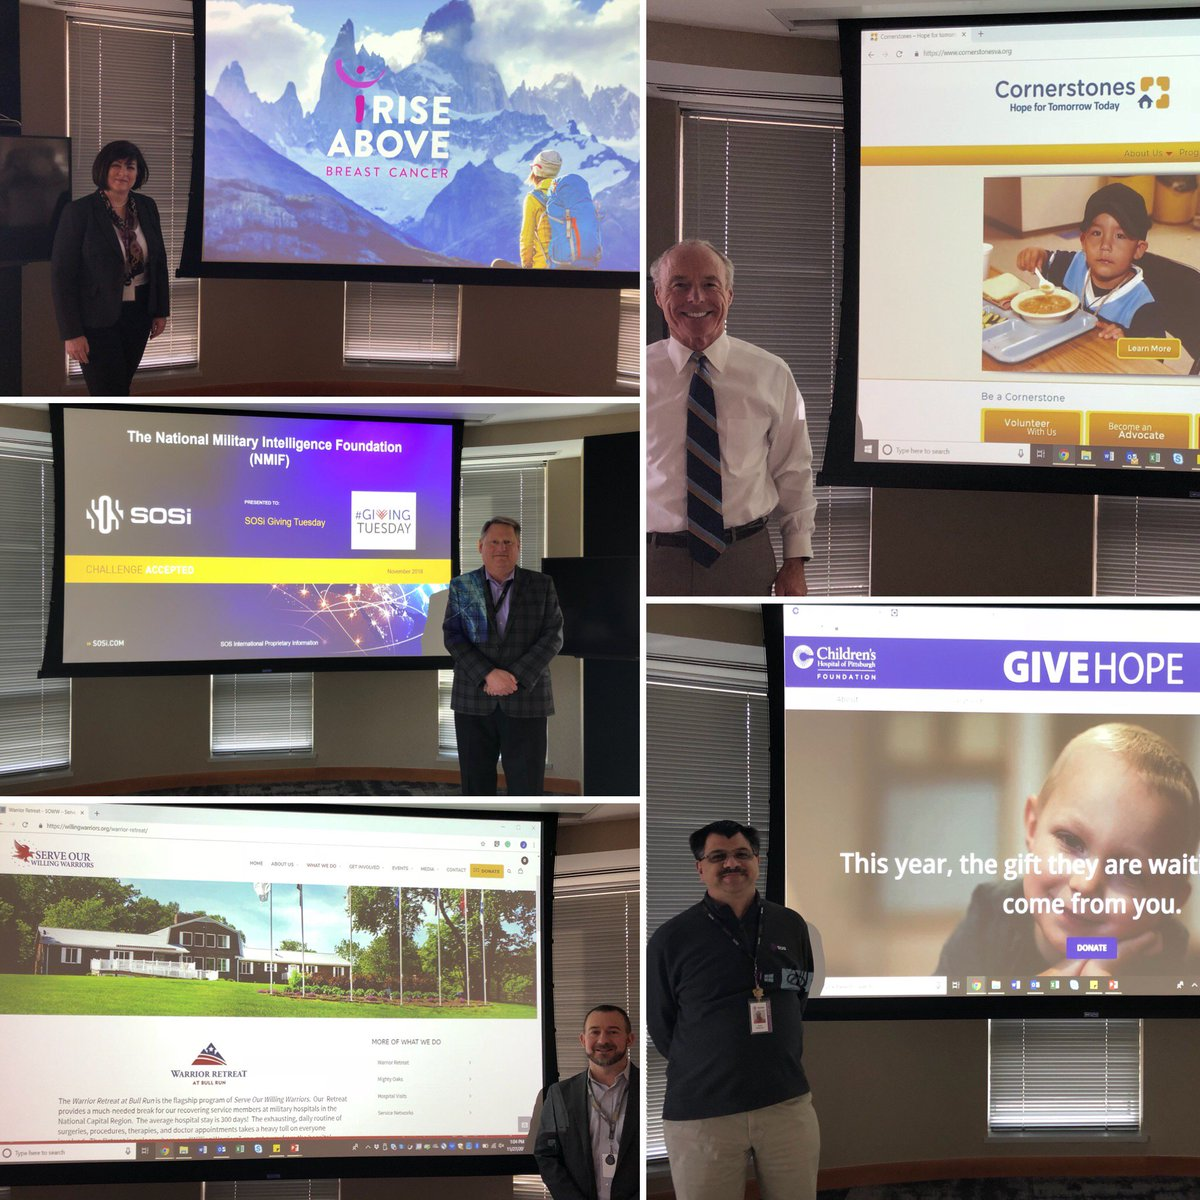 For #GivingTuesday, @SOSi_HQ hosted a pitch contest giving staff the chance to win a SOSi donation for their favorite nonprofit. @ChildrensPgh, @iRise_Above_Now, @cornerstonesva, the National Military Intelligence Foundation, @WincRoyals, and @SOWW_va. Winner announced tomorrow!